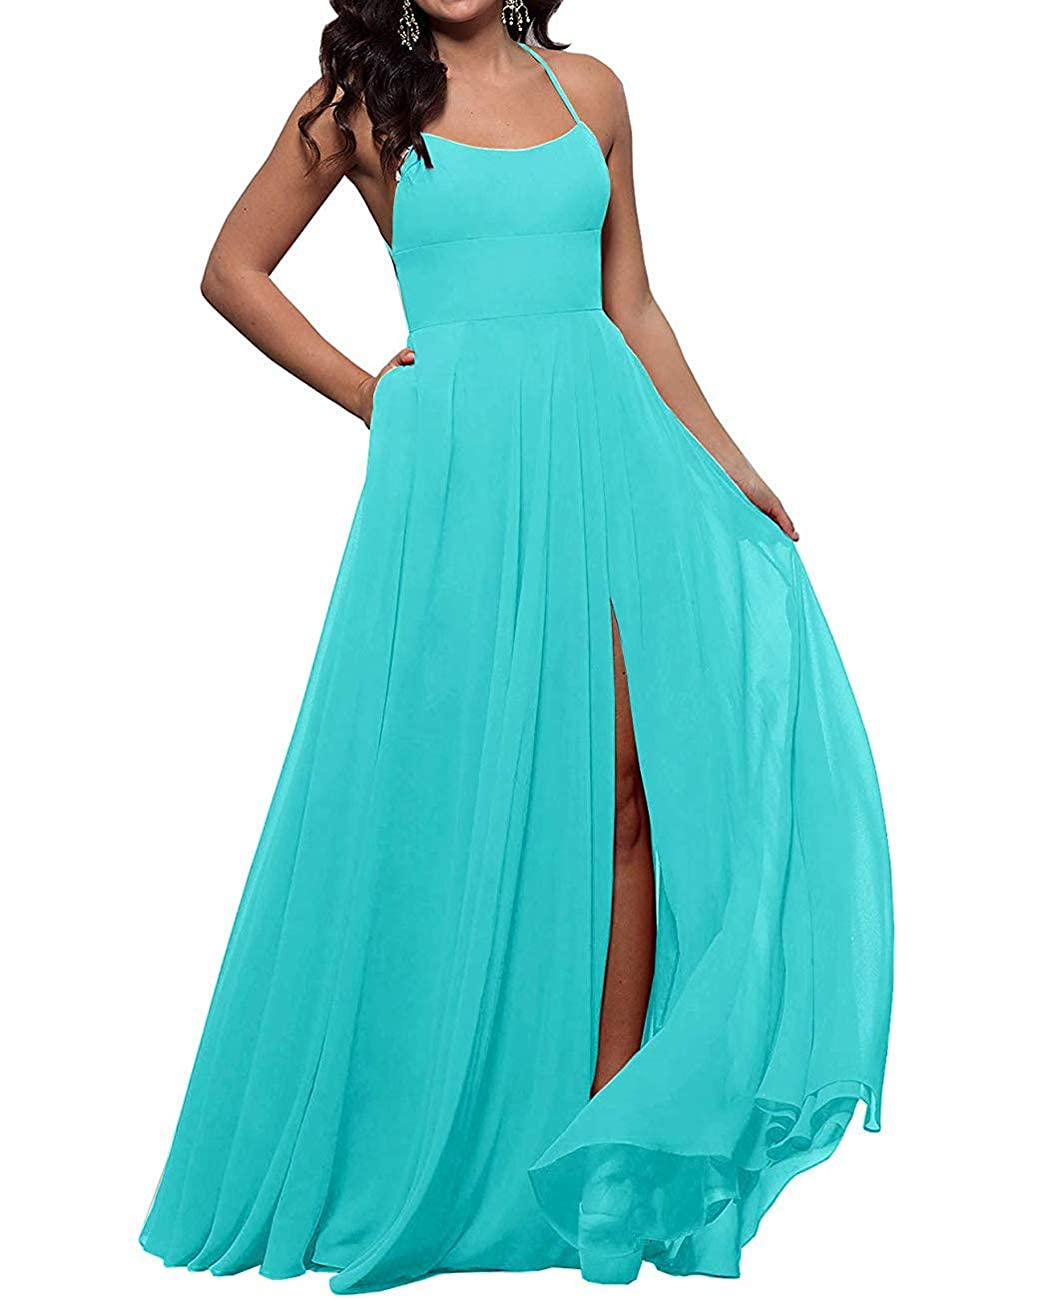 Turquoise ALine StraightNeck Long Prom Gown for Women Sexy Side Slit Bridesmaid Dresses